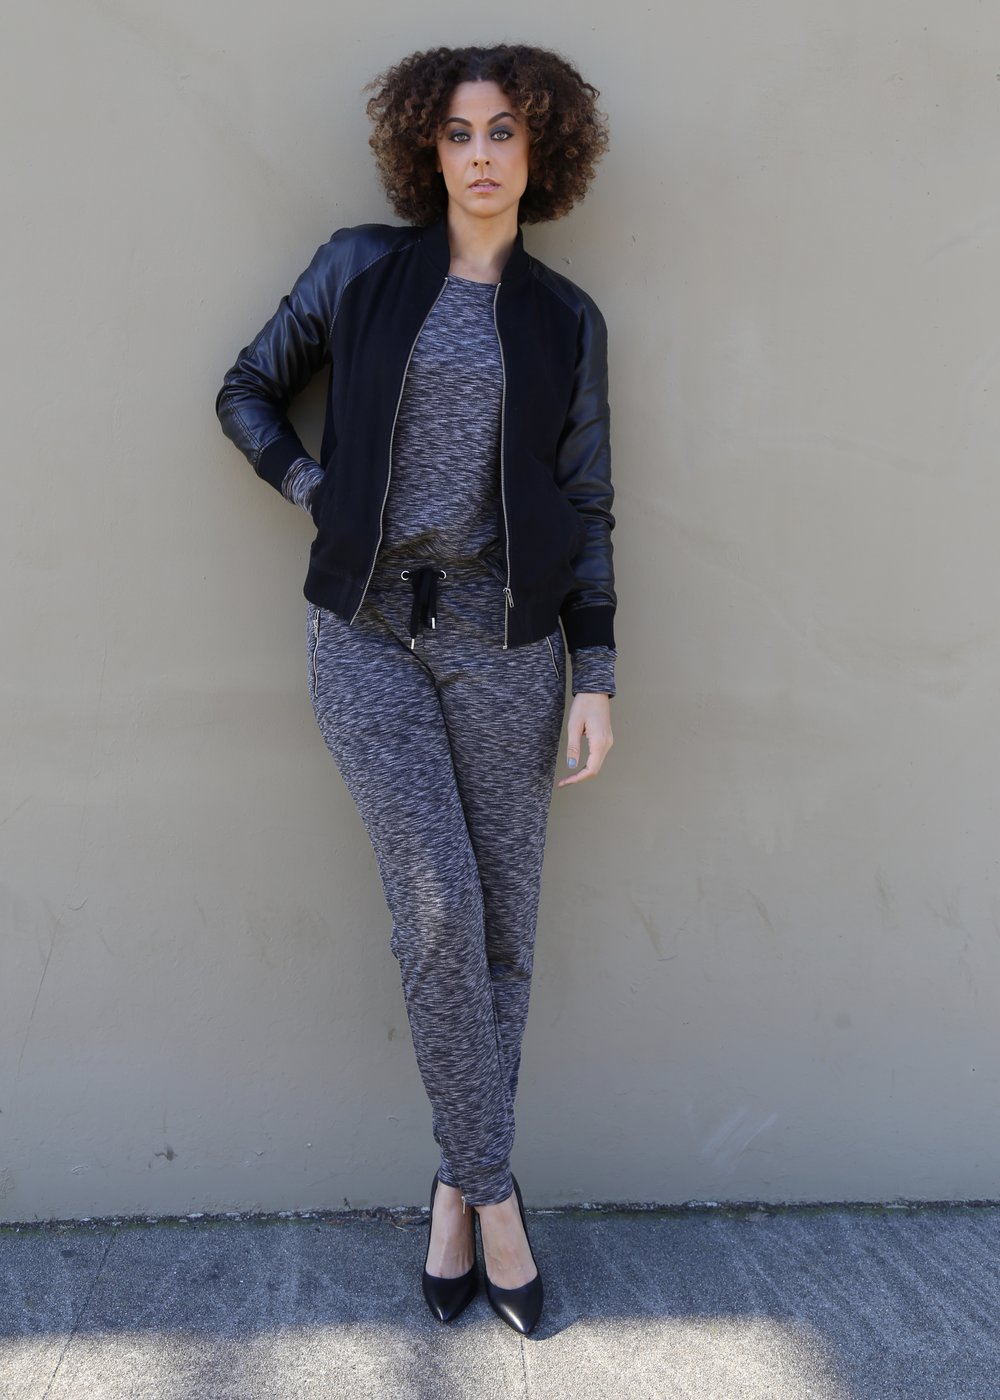 Spacedye Zip Detail Sweatshirt and Pants - Long Tall Sally/Bomber Jacket (Men's) - Forever 21/Shoes (shown in size 12) - Nordstrom Rack Photo Credit: LaKeela Smith